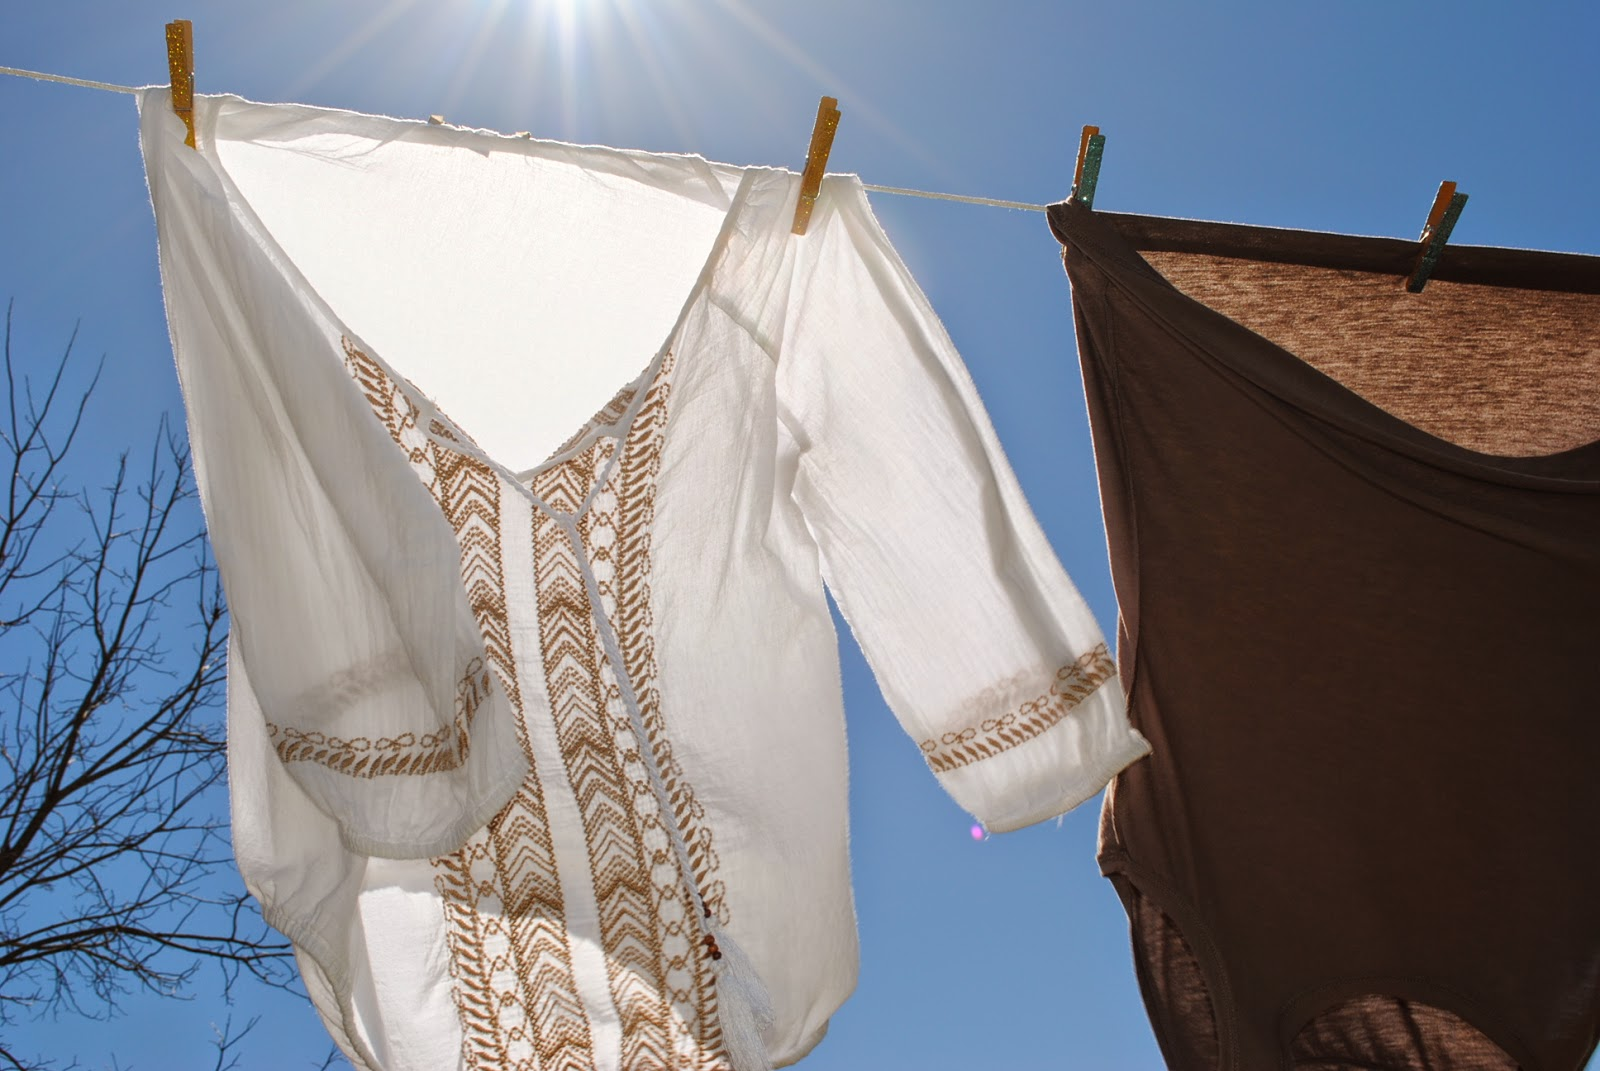 http://peppysis.blogspot.com/2015/04/a-makeshift-clothesline.html